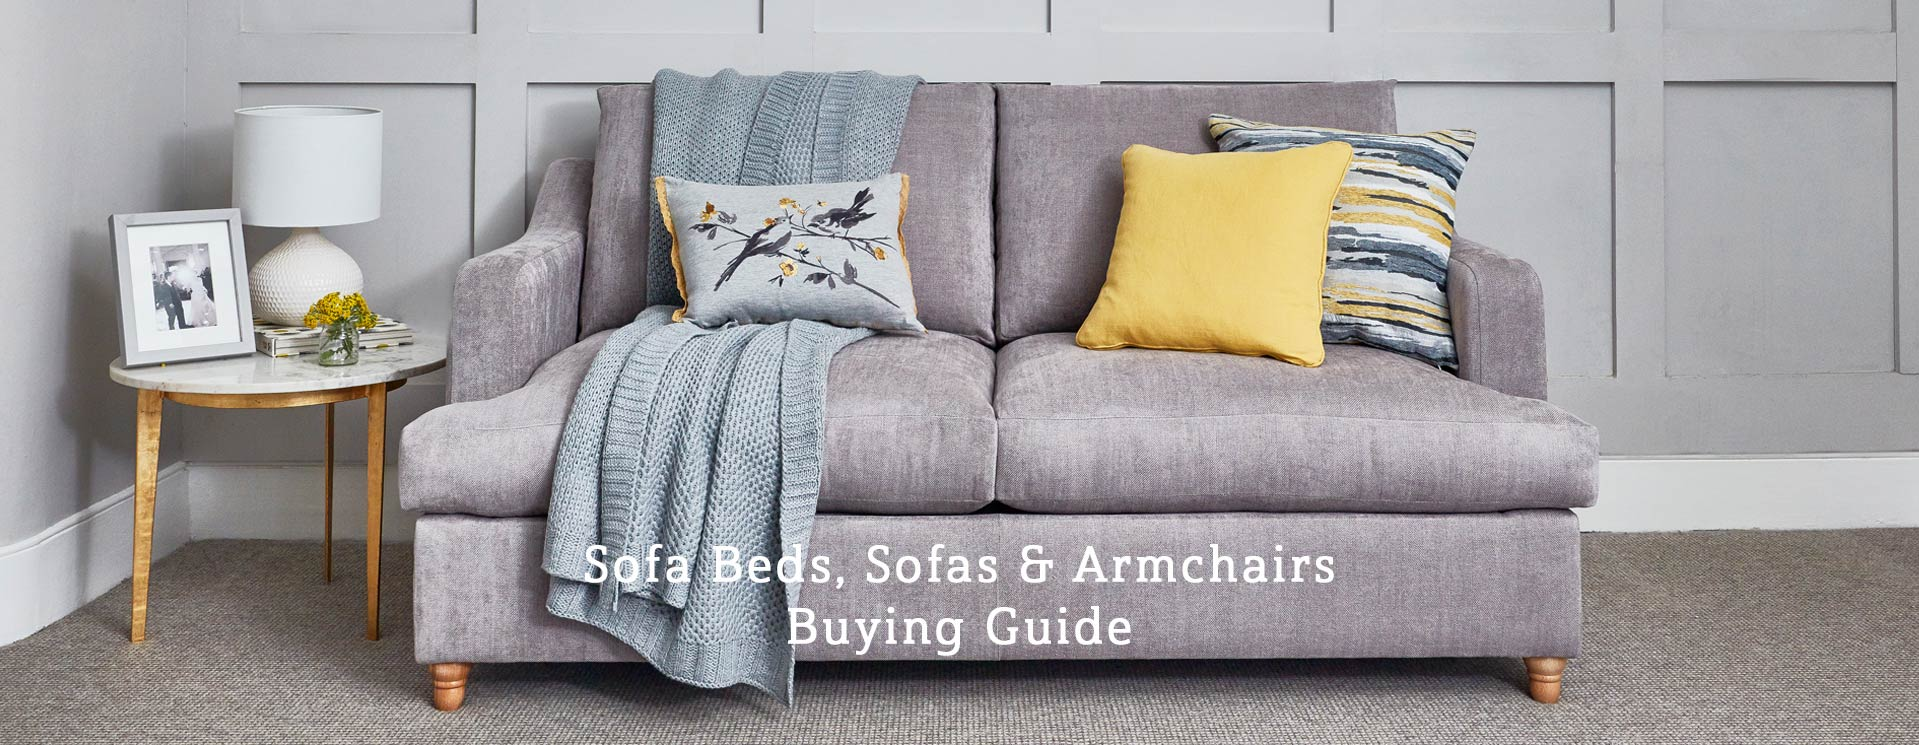 Buying Guide Sofa Beds, Sofas